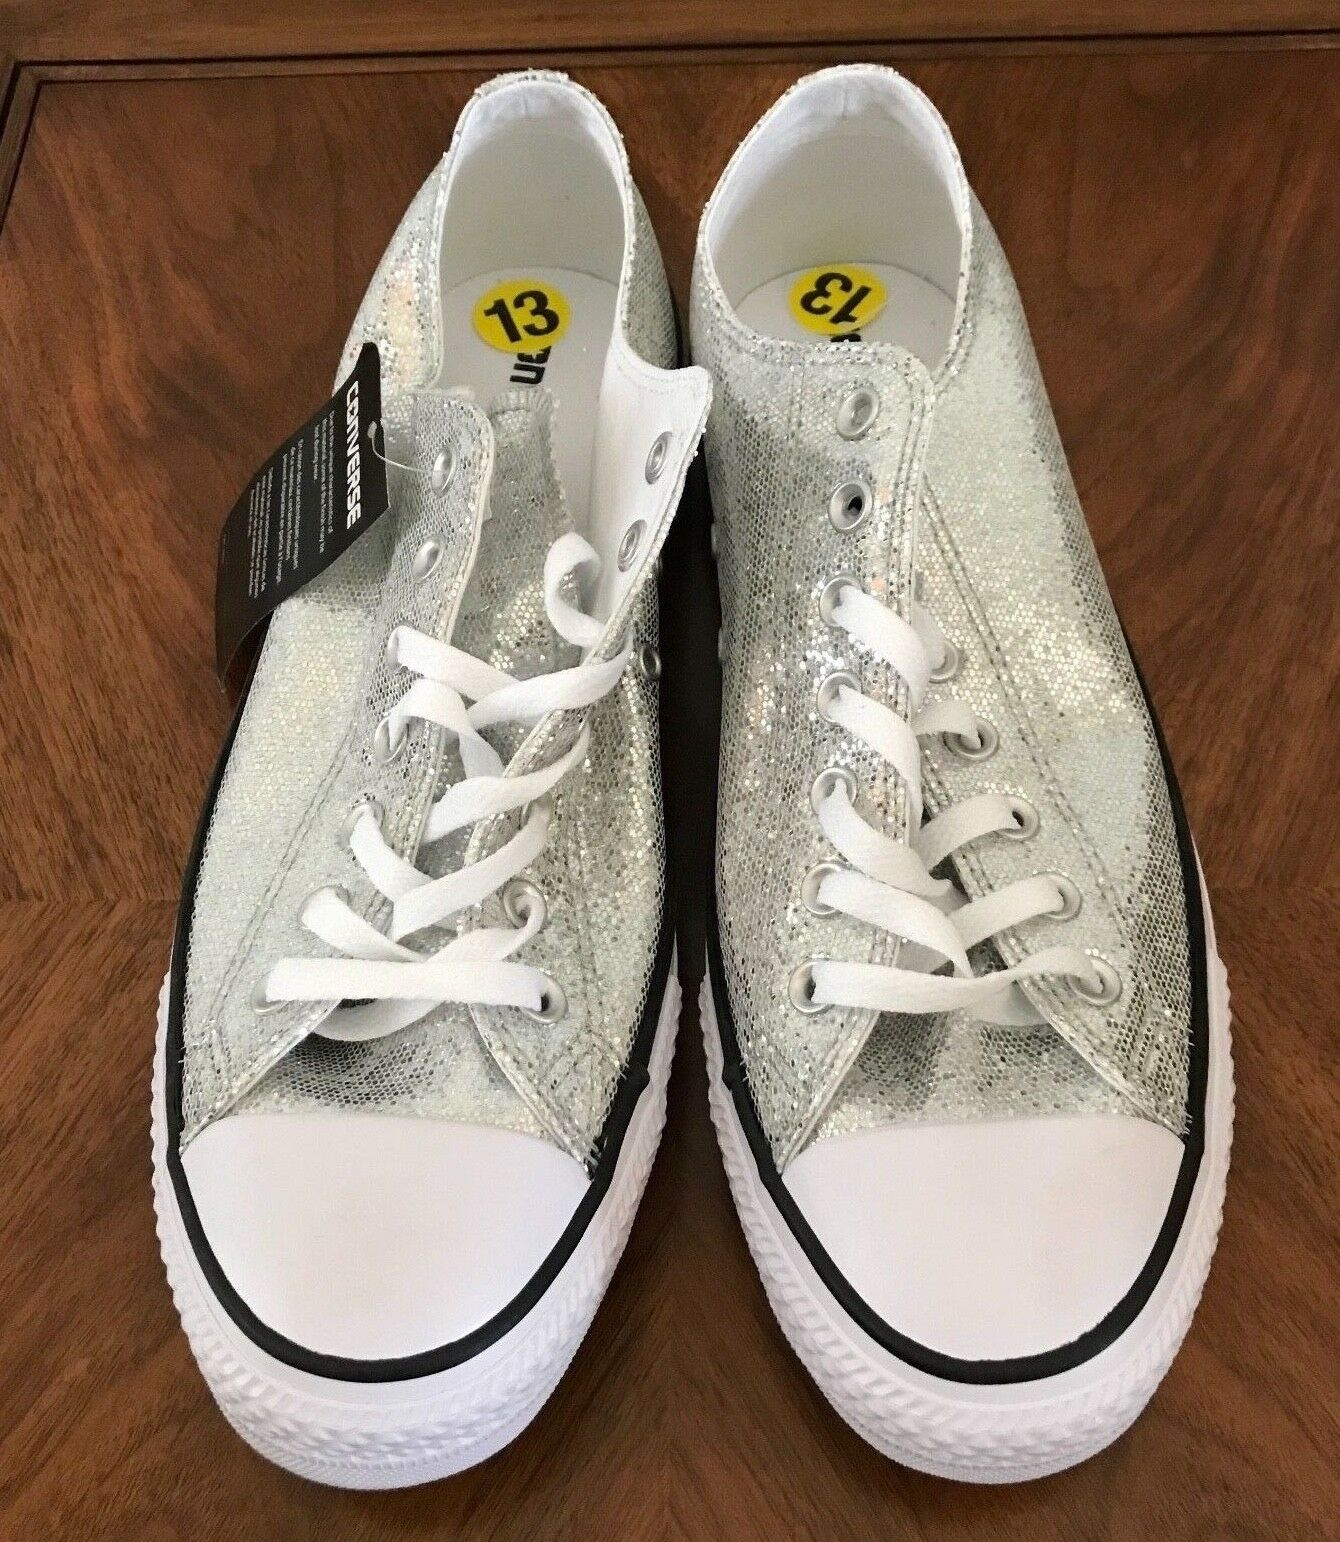 Converse All Star Chuck Taylor Sneakers Silver Glitter Sparkle Womens 13 Shoes